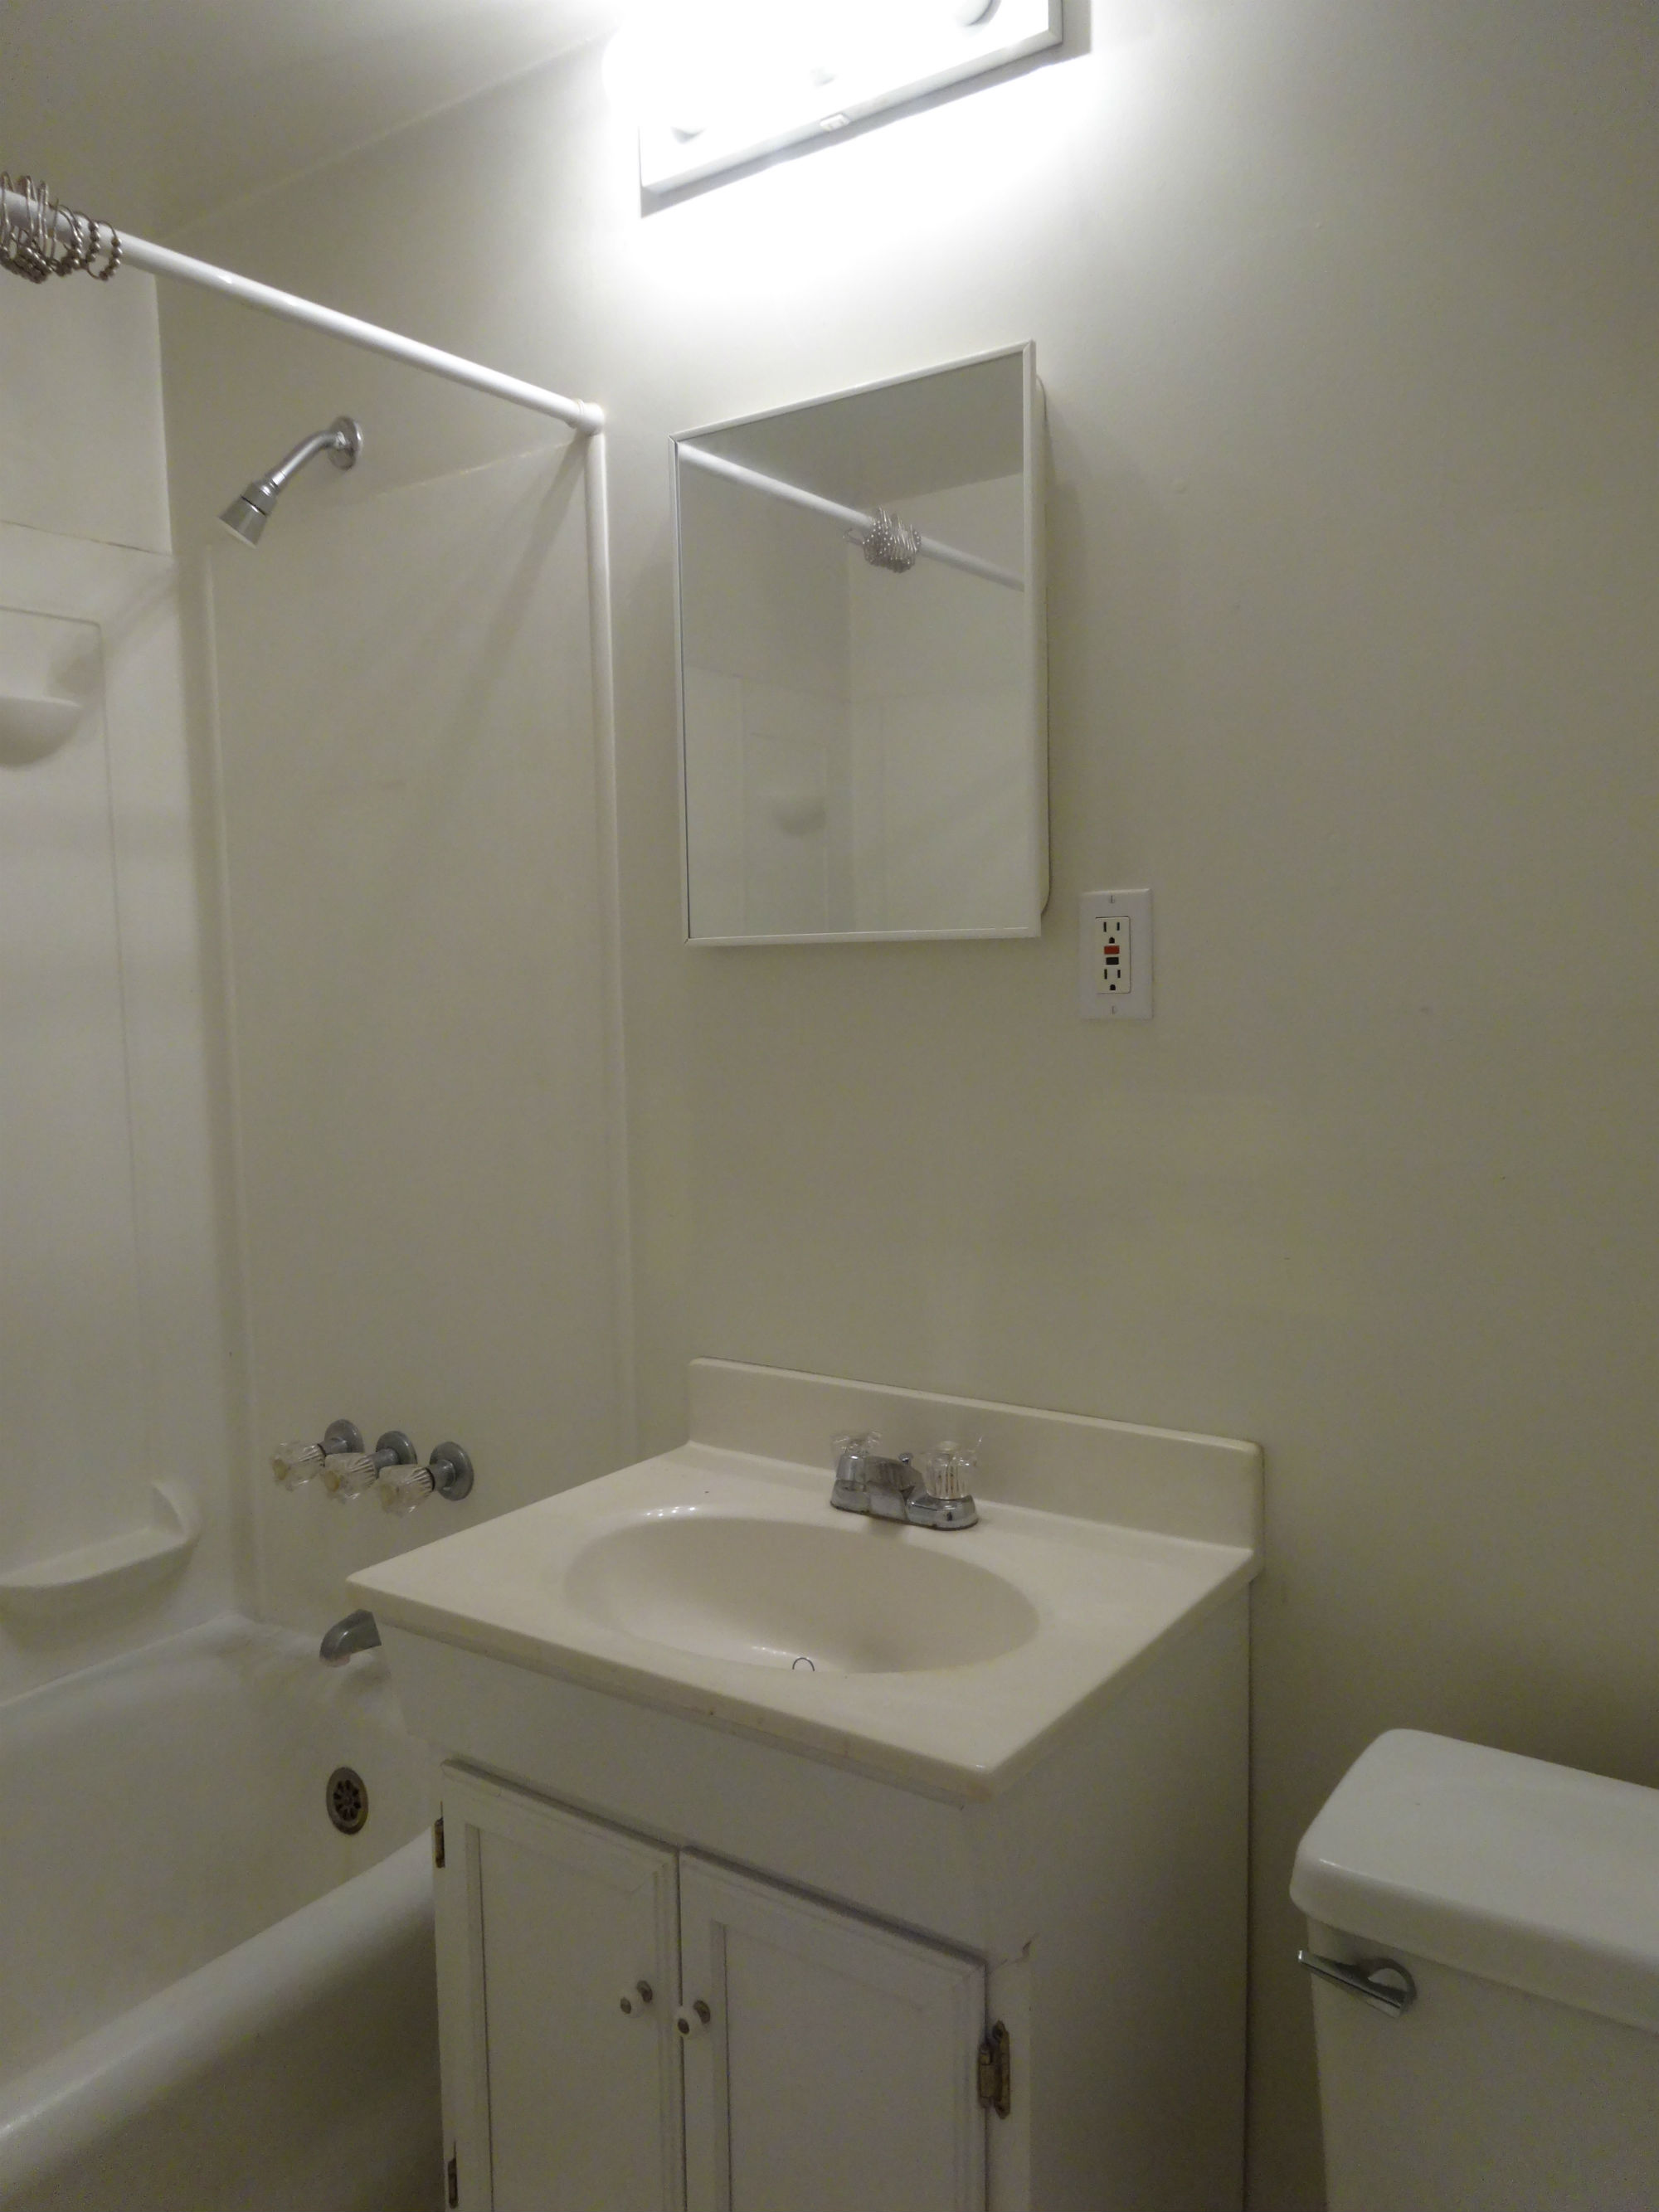 Inspirational Left side bathroom with newer vanity and toilet